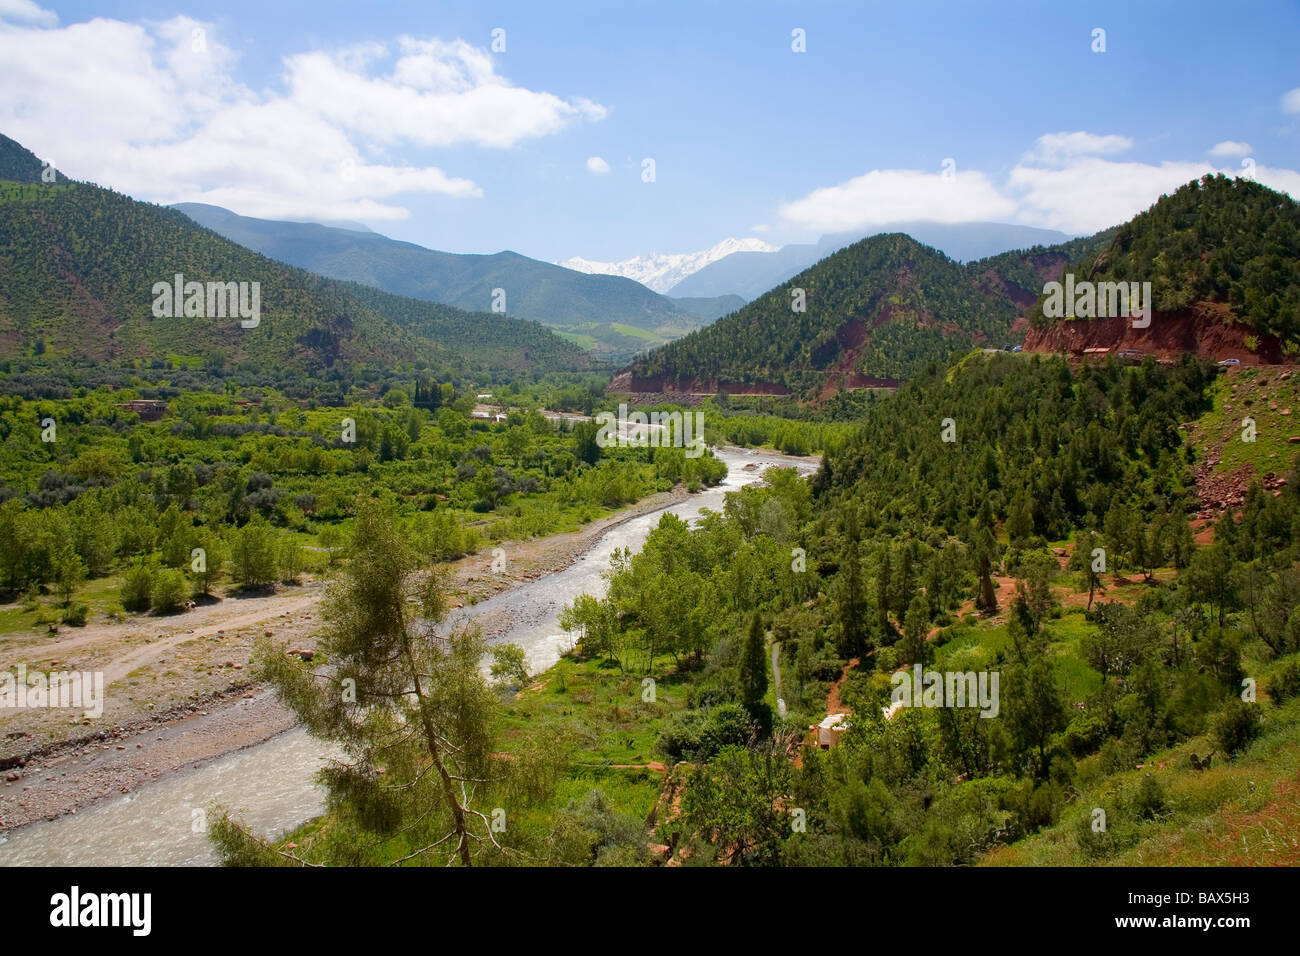 Snow on the mountains springtime in the Ourika Valley Morocco near Marrakech - Stock Image